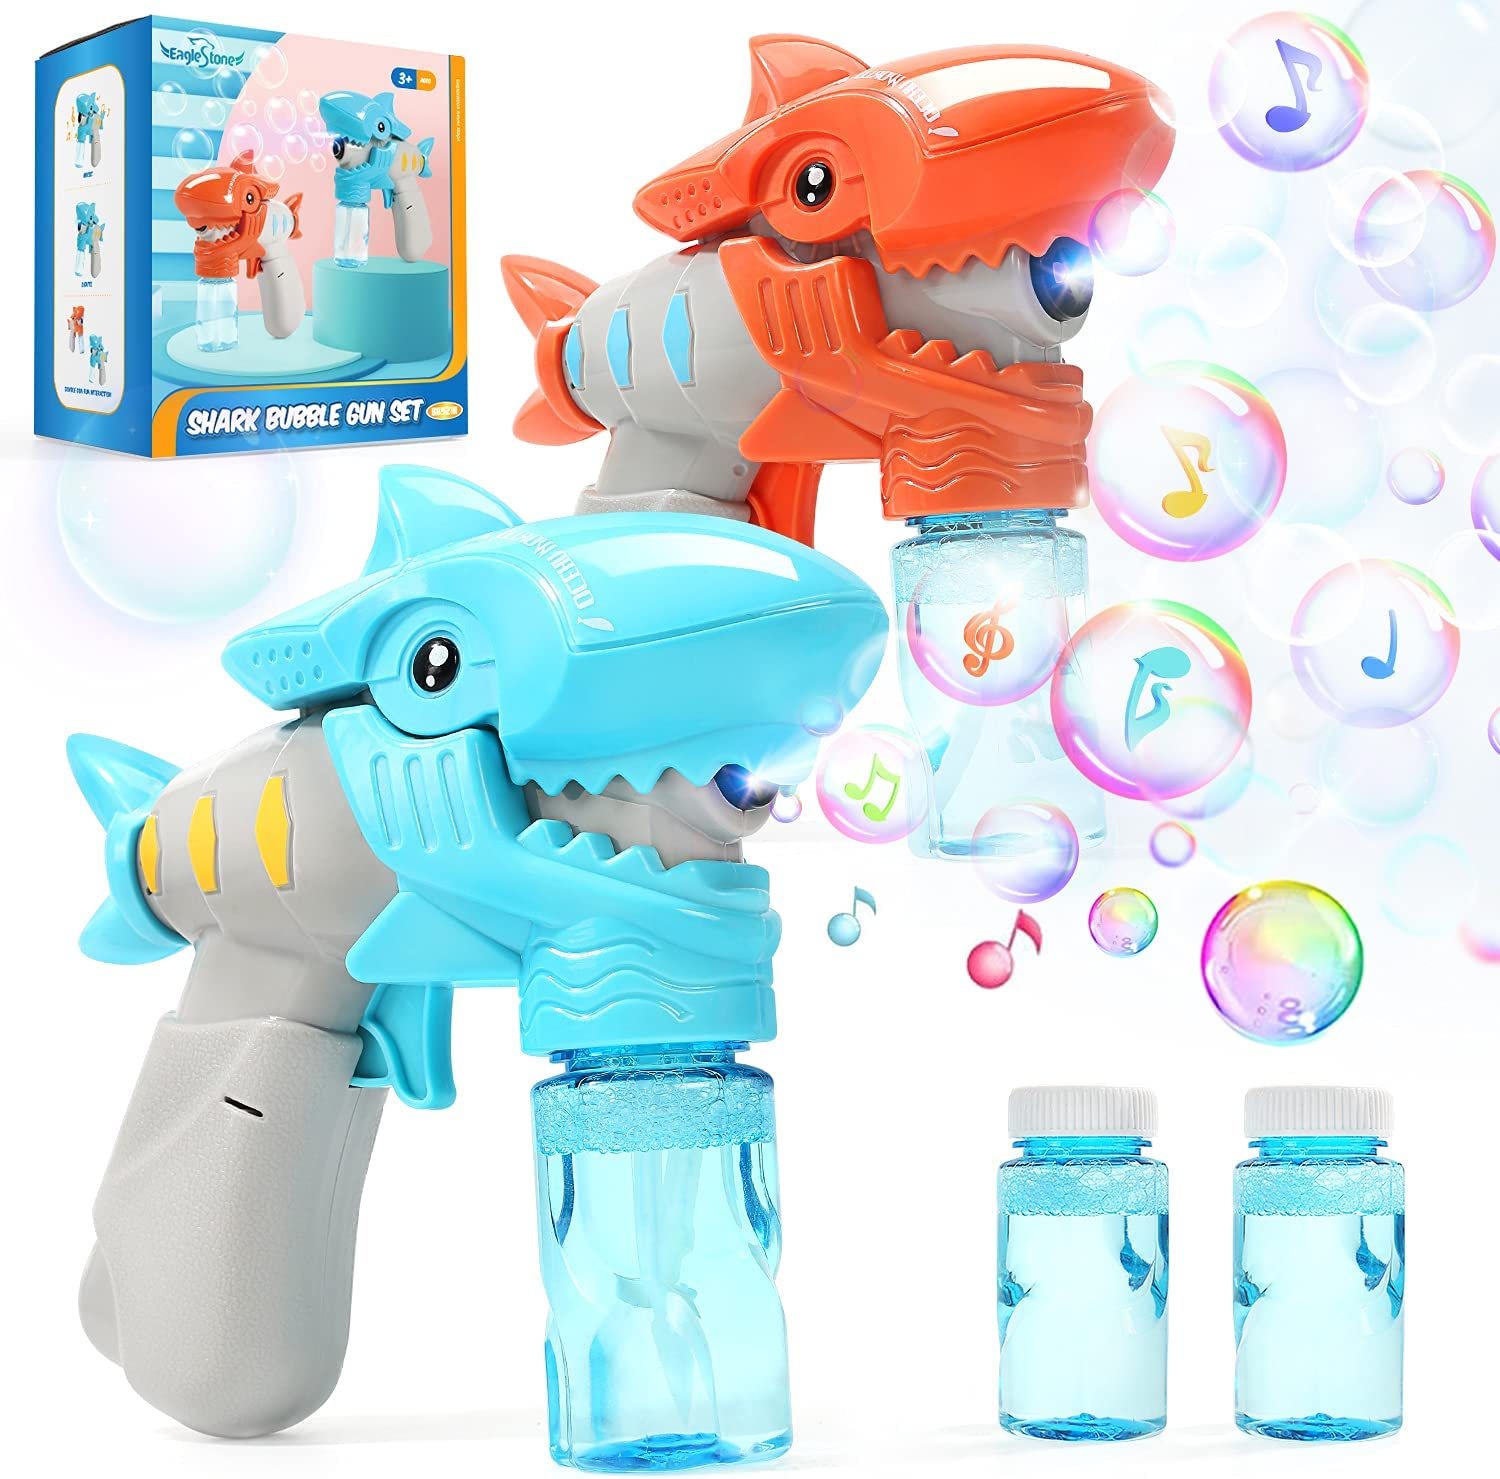 2 Bubble Gun for Kids,Light-Up and Musical Automatic Shark Bubble Blower Toys with 4 Bubble Solution,Fun Summer Outdoor Party Gift for 4 5 6 7 8+ Years Old Toddlers Boys GirlsBubble Maker Machine